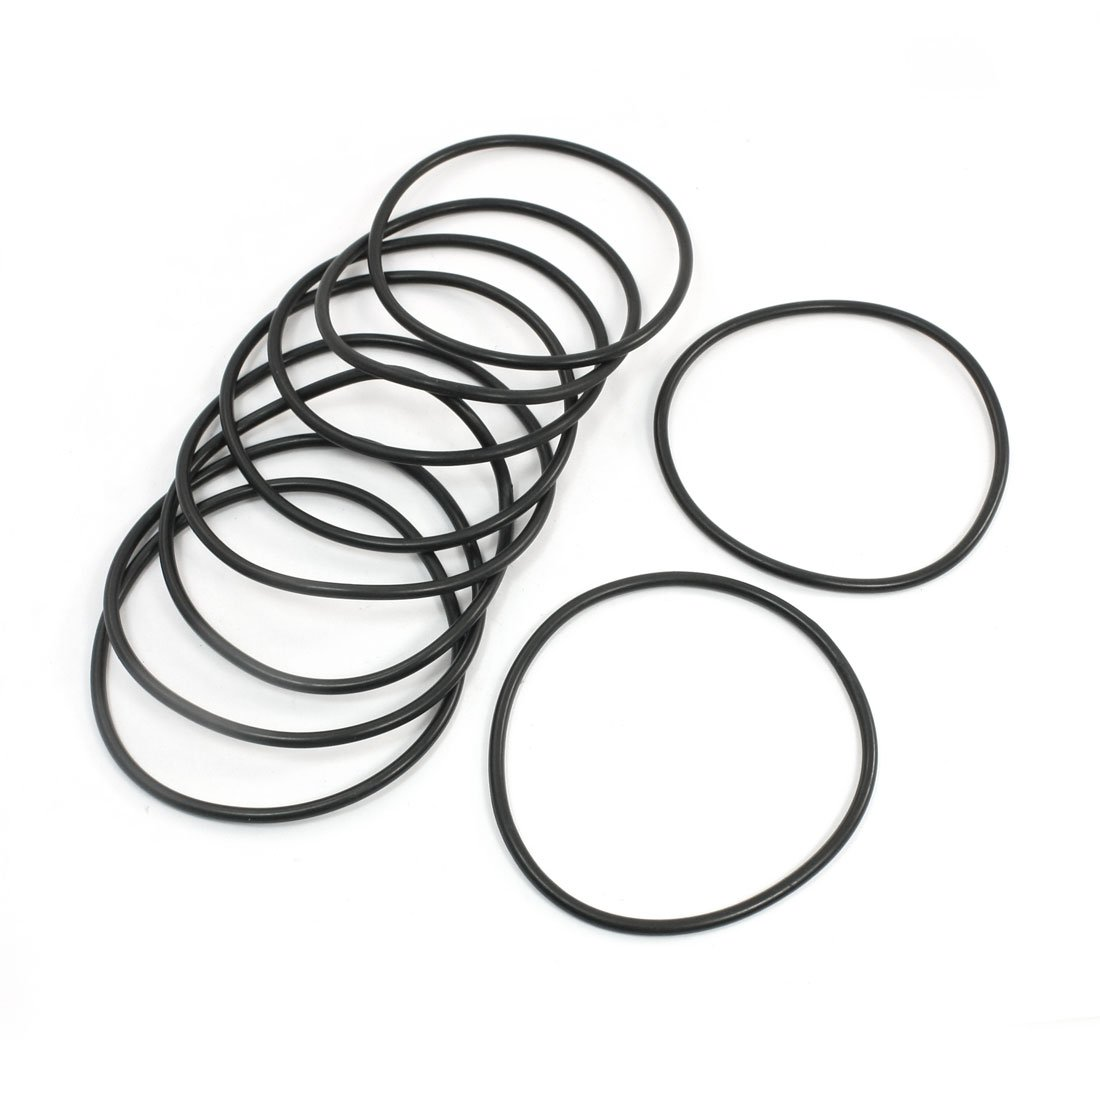 10pcs 100mm OD 4mm Thickness Industrial Rubber O Ring Seal Black Sourcingmap a14022100ux0218